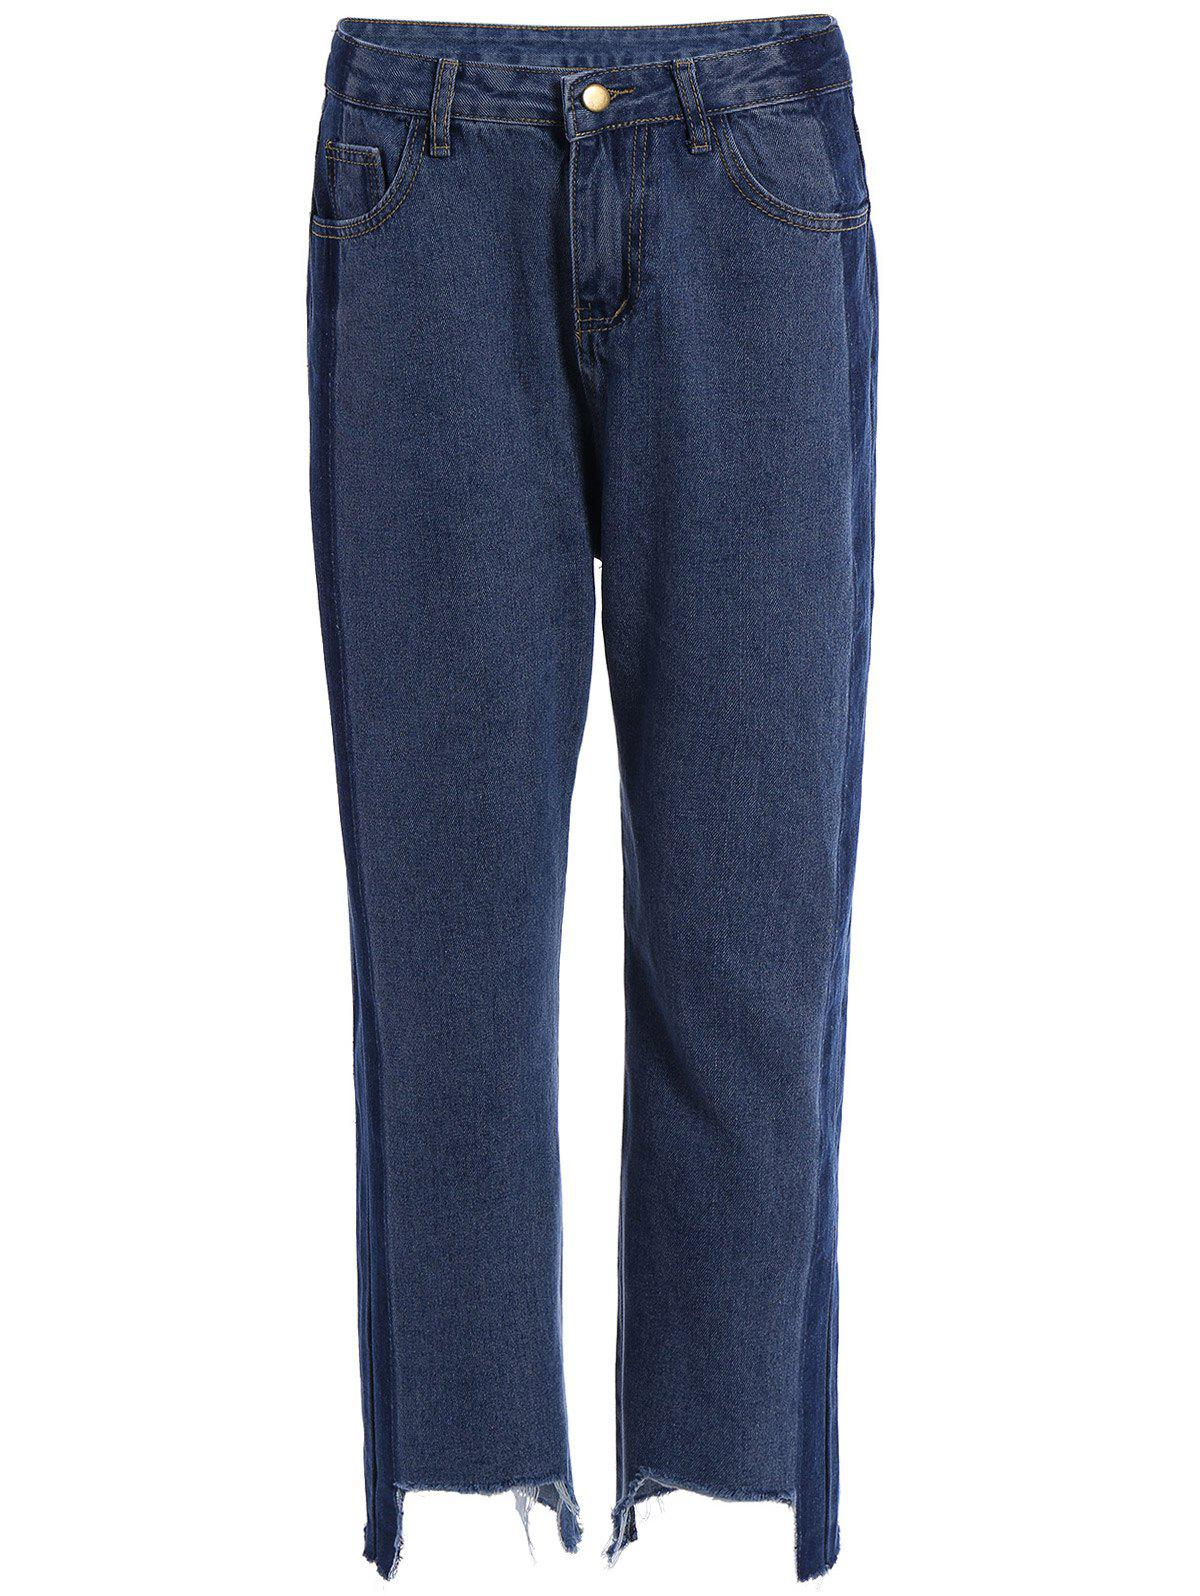 Two Tone Frayed Hem Wide Leg Jeans - BLUE 27